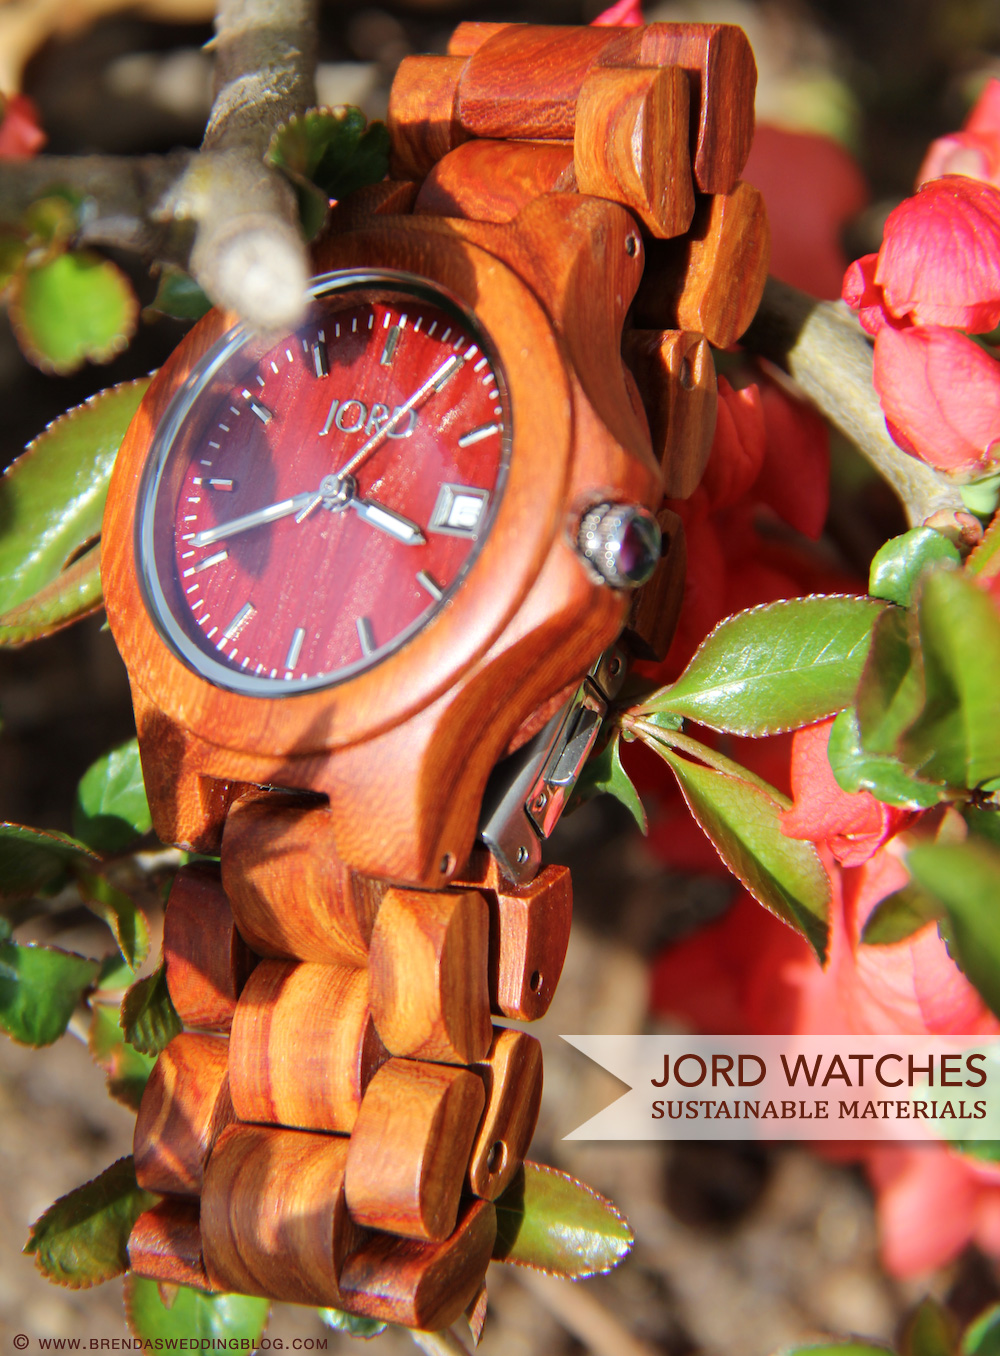 JORD Watches are hand-made with sustainable material {100% natural wood} - they make perfect wedding gifts. Maybe surprise your groom? | from www.brendasweddingblog.com